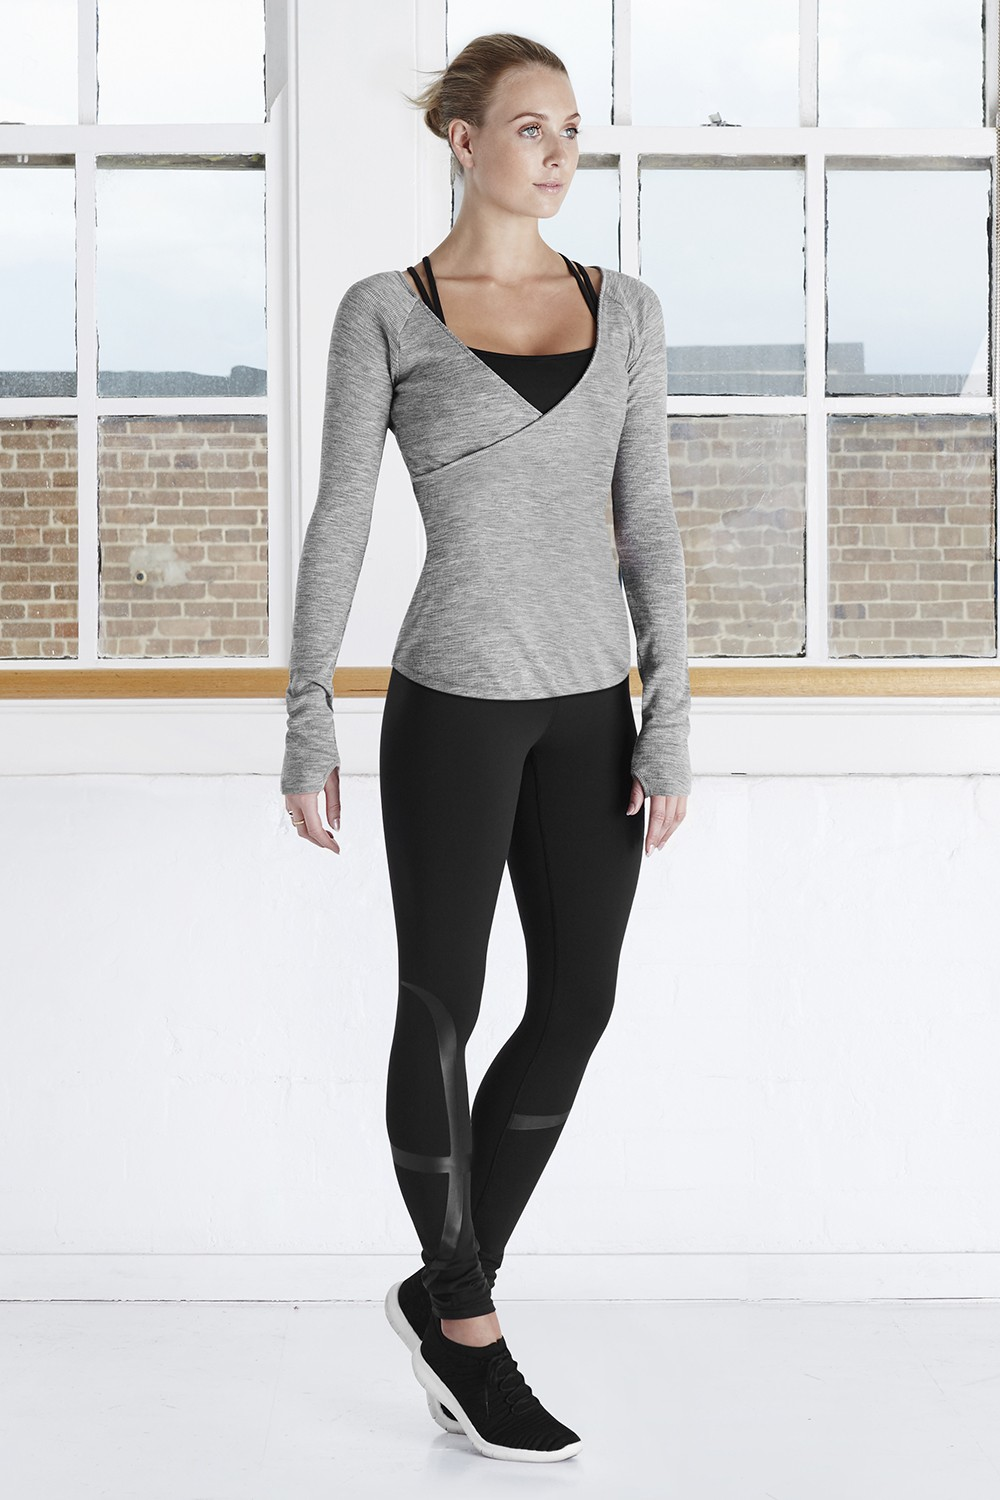 Luxurious Merino Cross Front Top Women's Dance Warmups